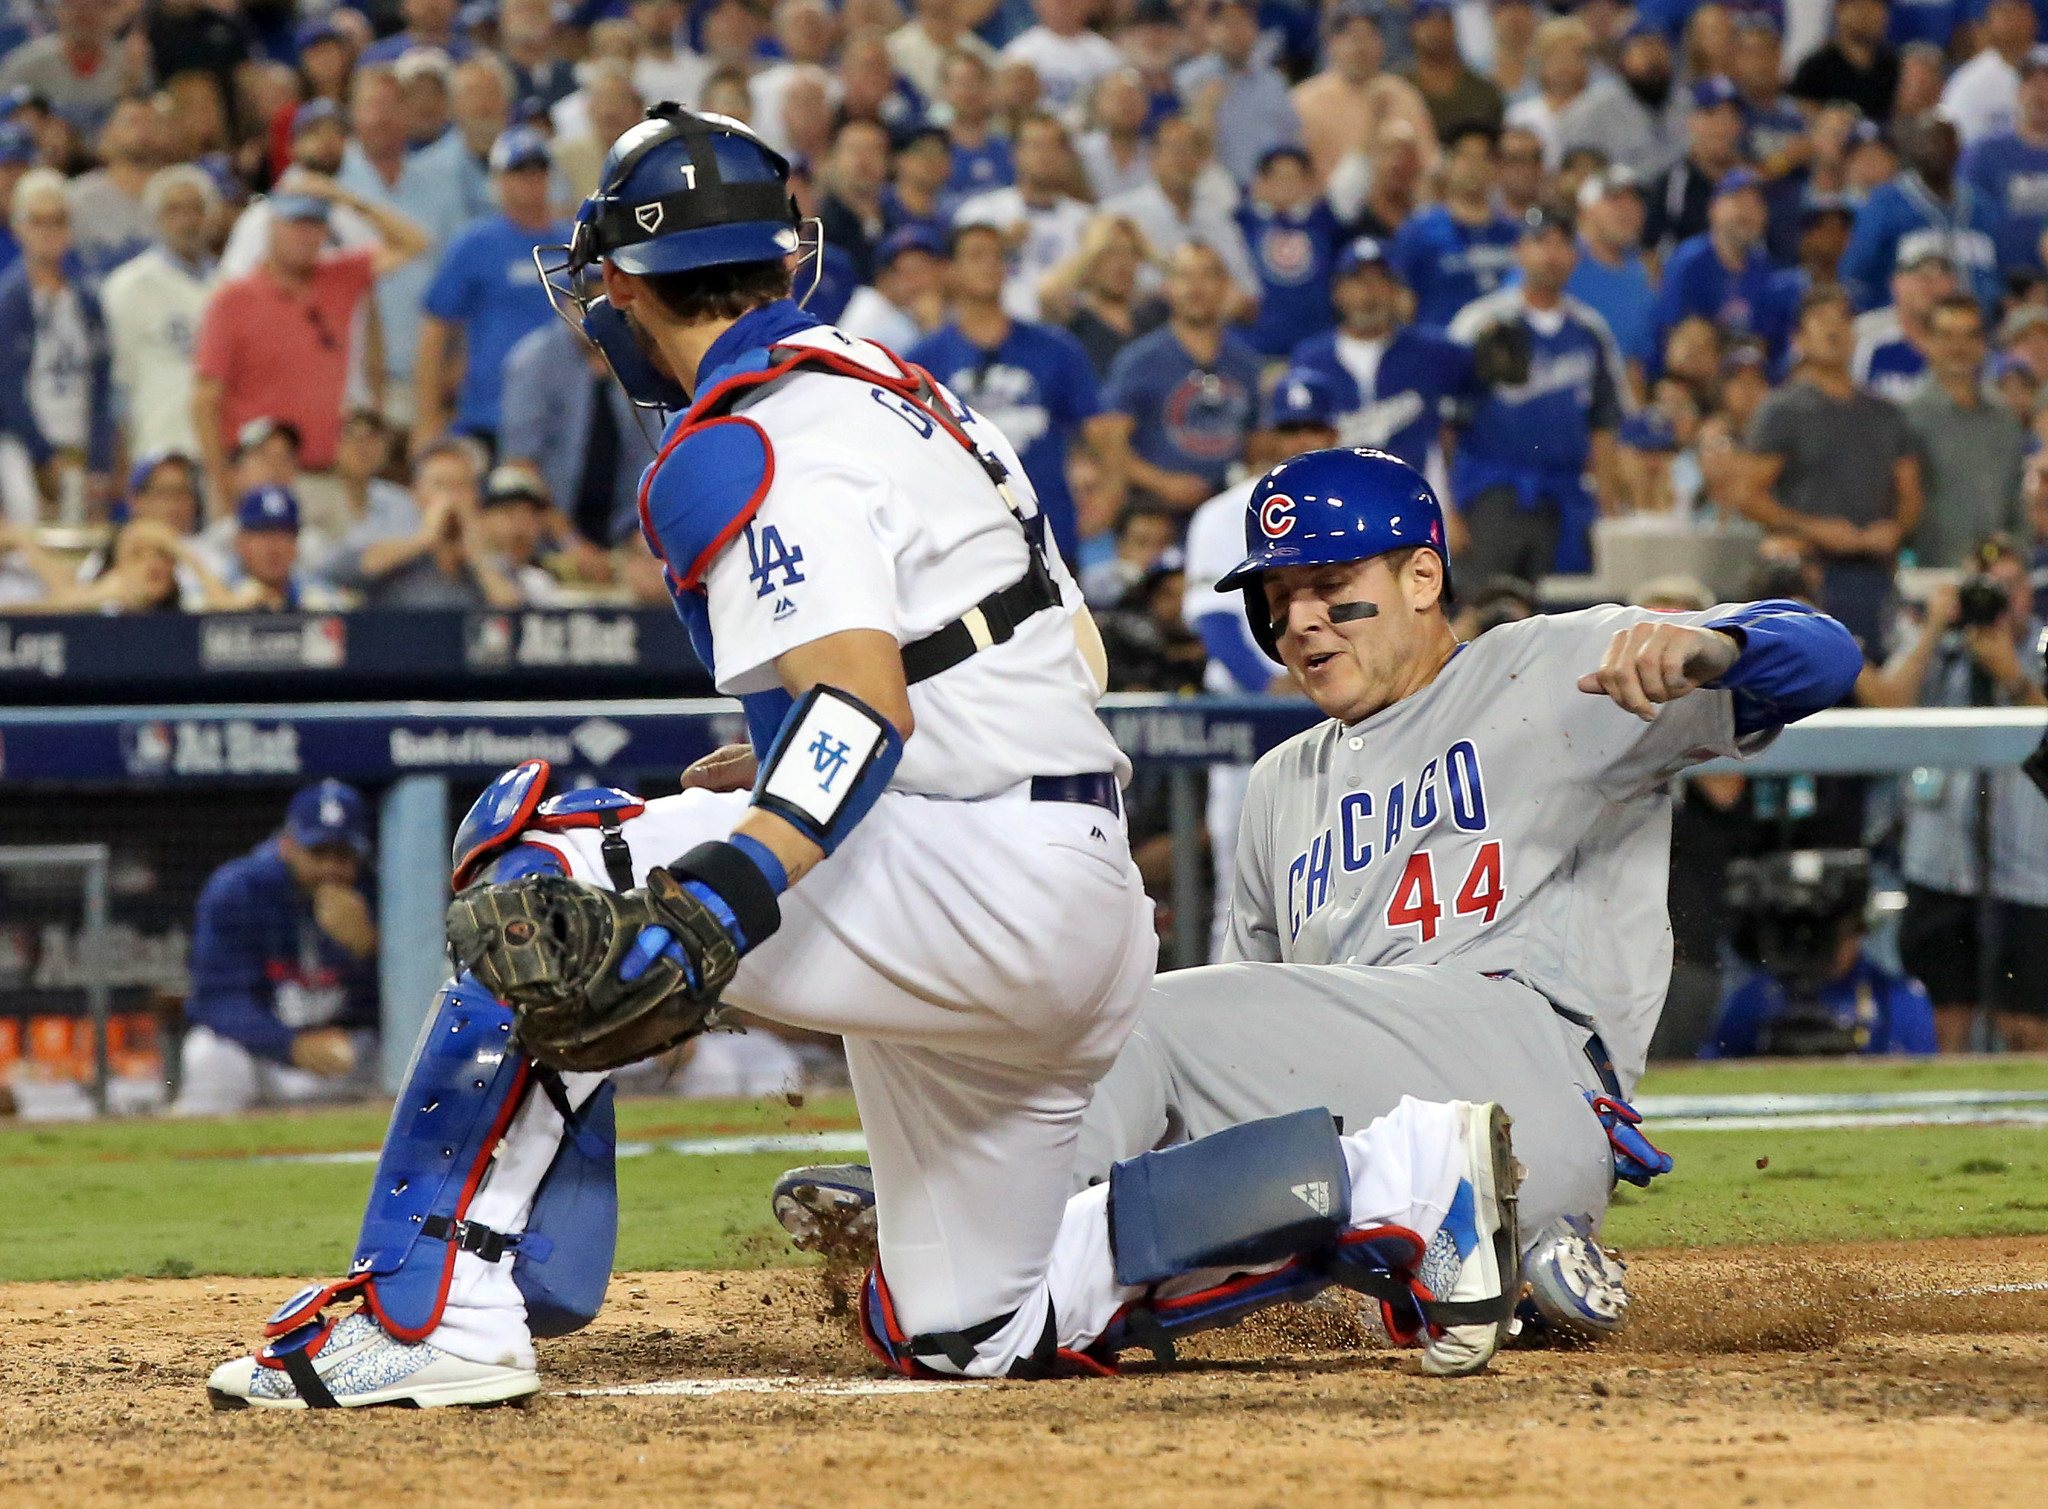 Ct-cubs-even-nlcs-with-dodgers-spt-1020-20161019